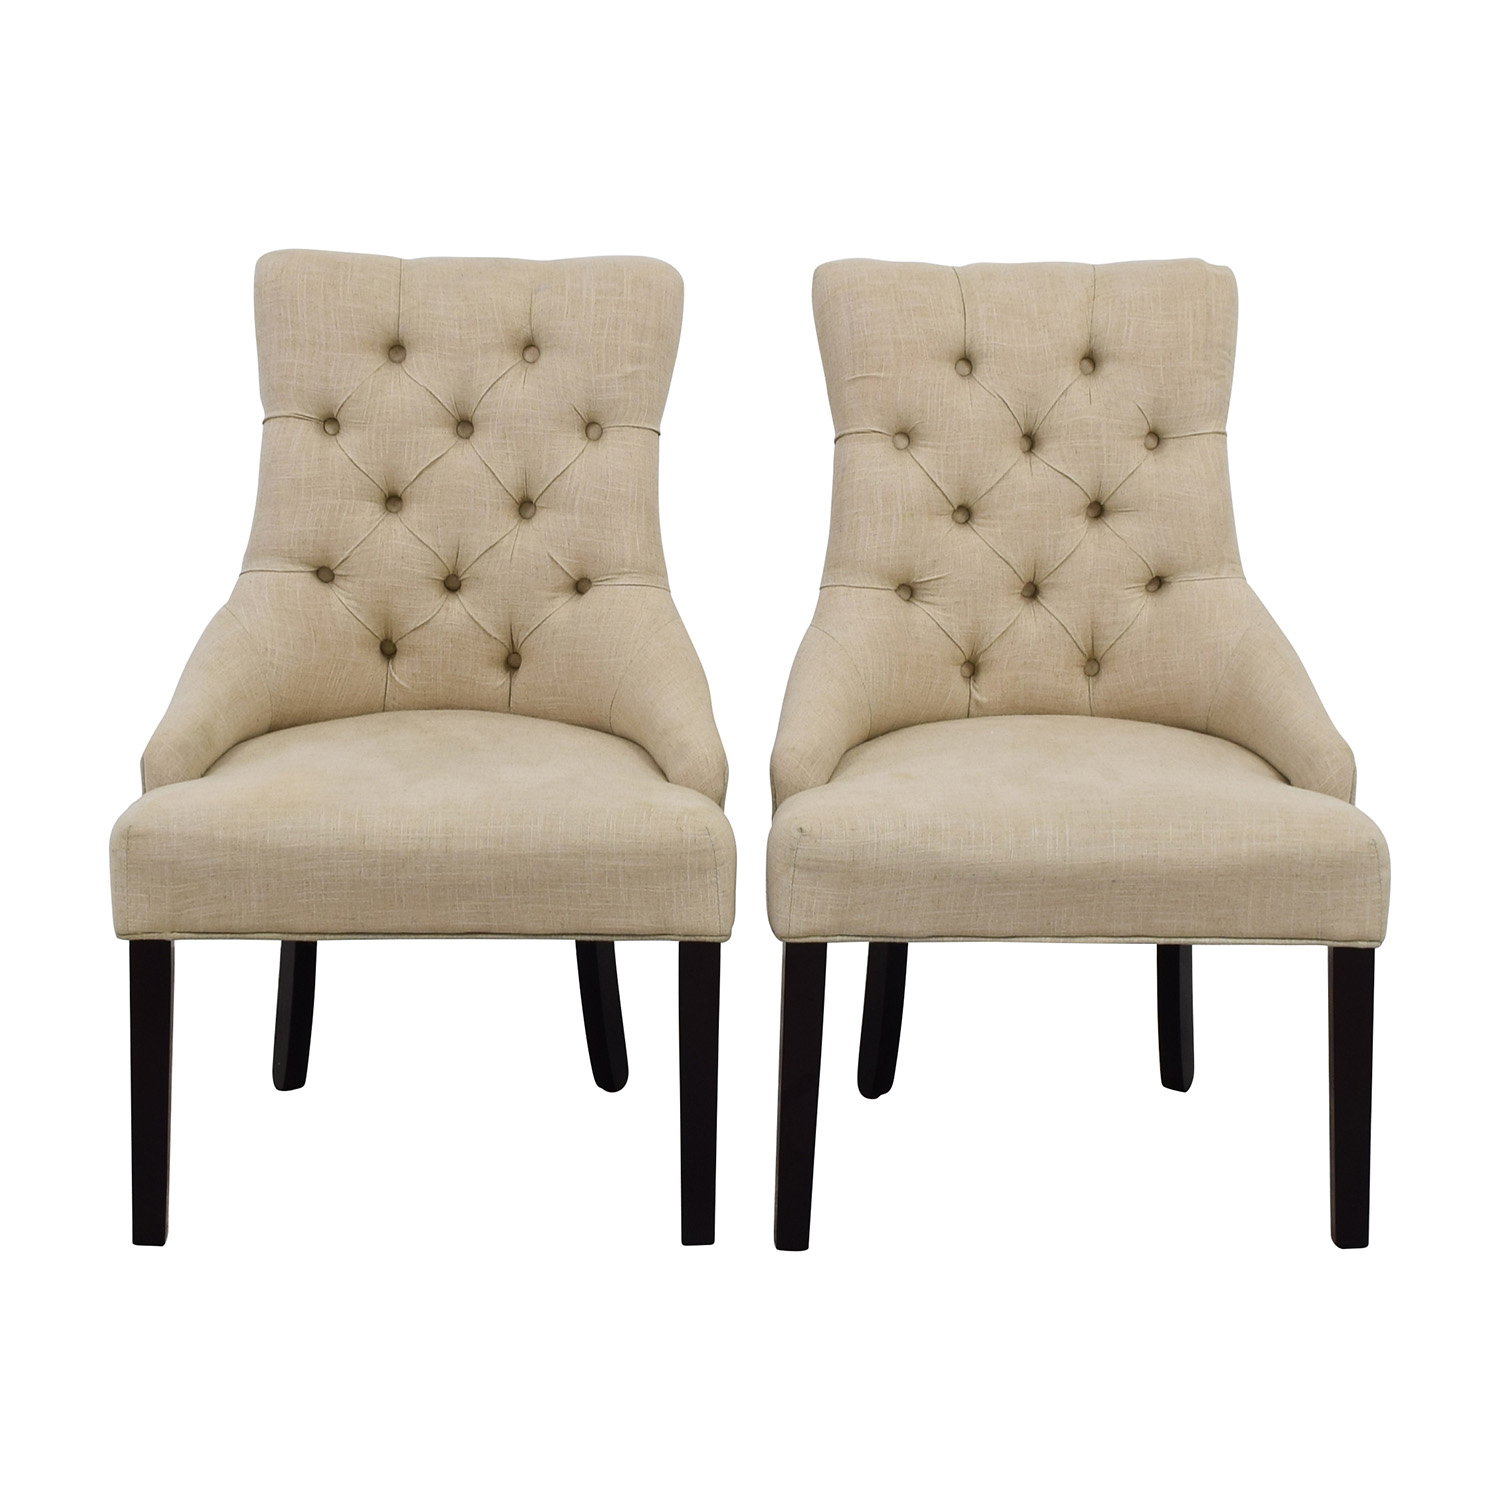 Raymour & Flanigan Raymour & Flanigan White Tufted Chairs nj